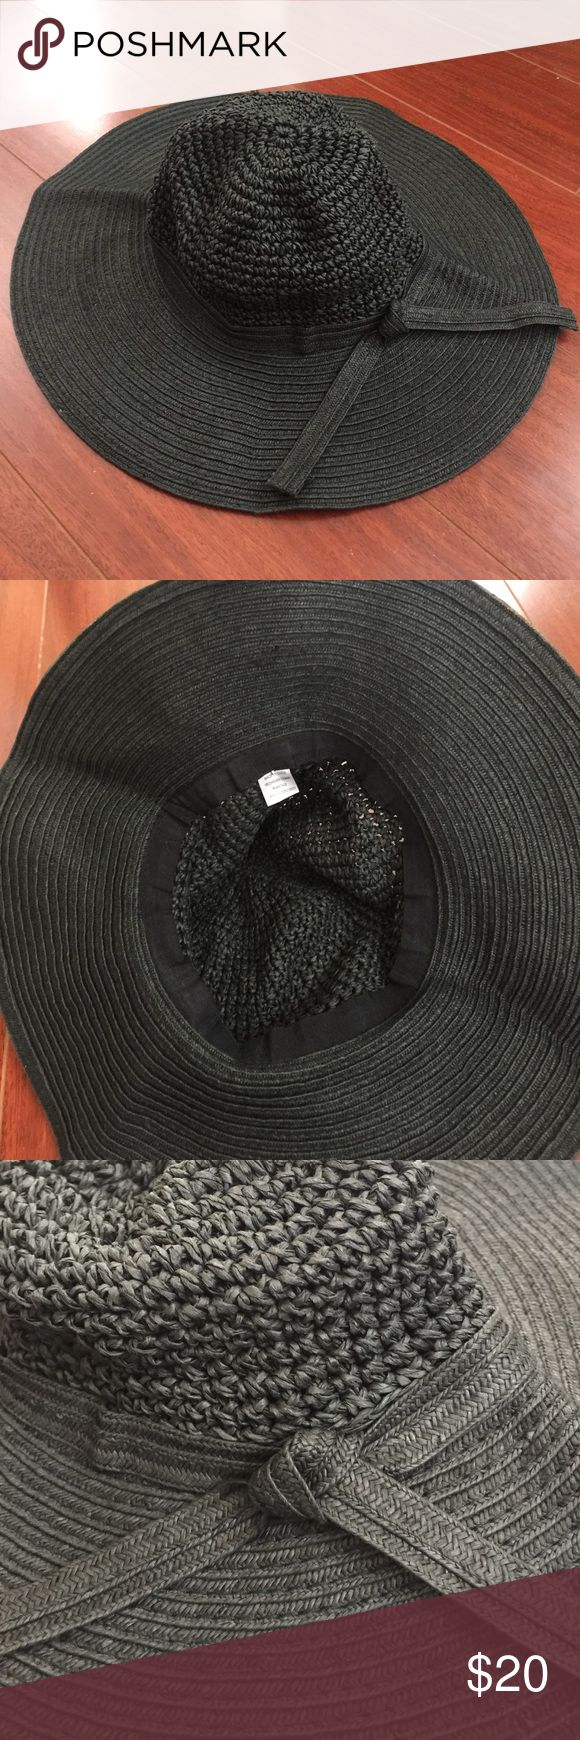 Black Straw Hat Perfect summer straw hat to wear to the pool or beach! Extremely flexible design with UV protection. Accessories Hats